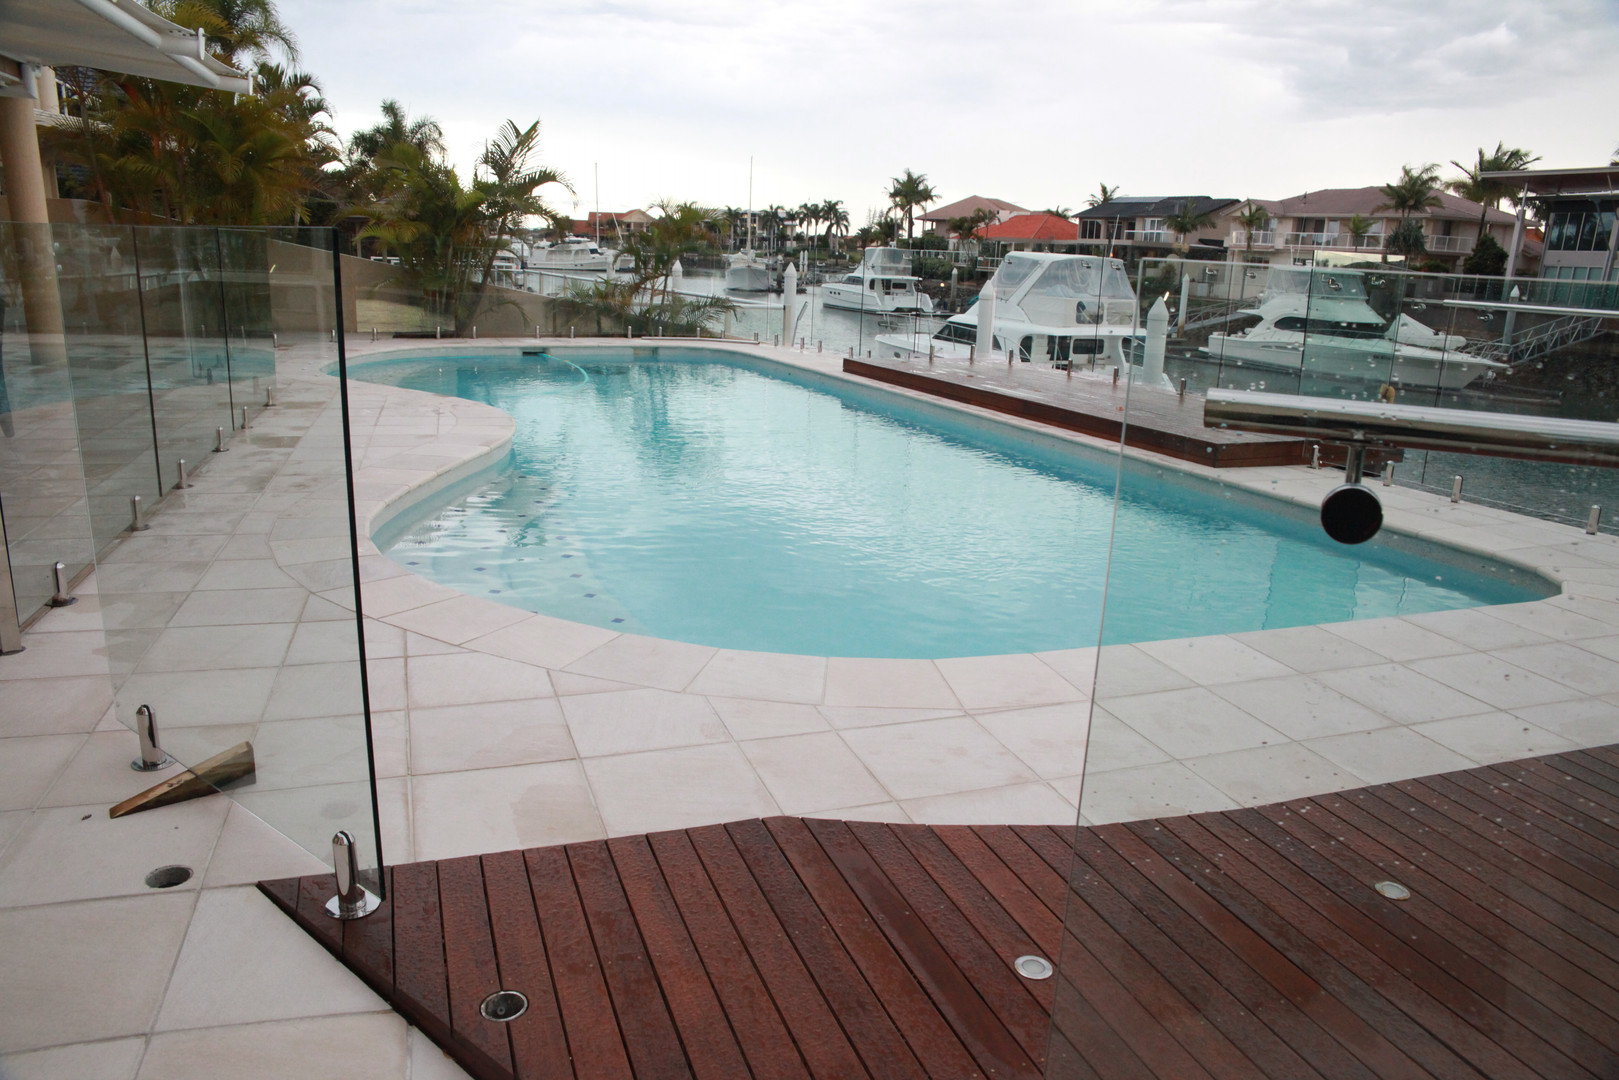 Raby Bay award winning pool project complete!